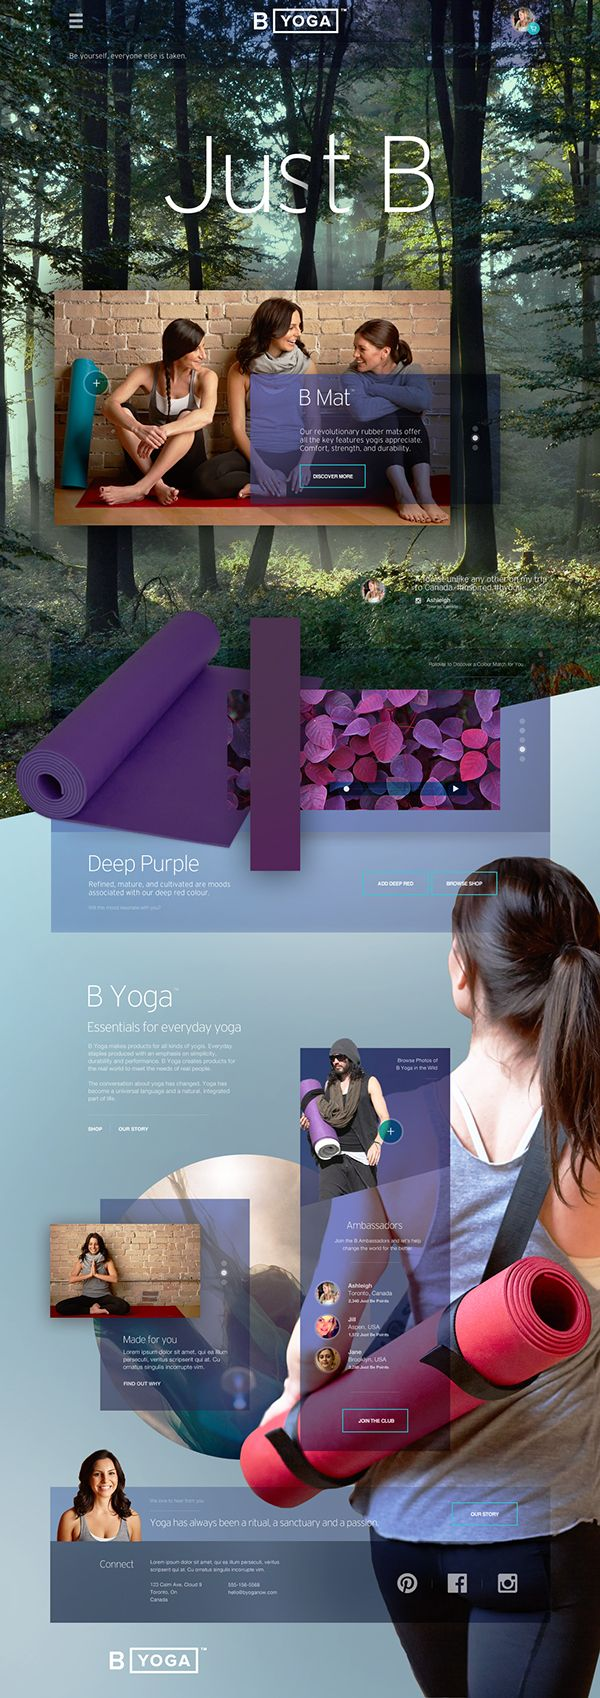 B Yoga Website on Behance